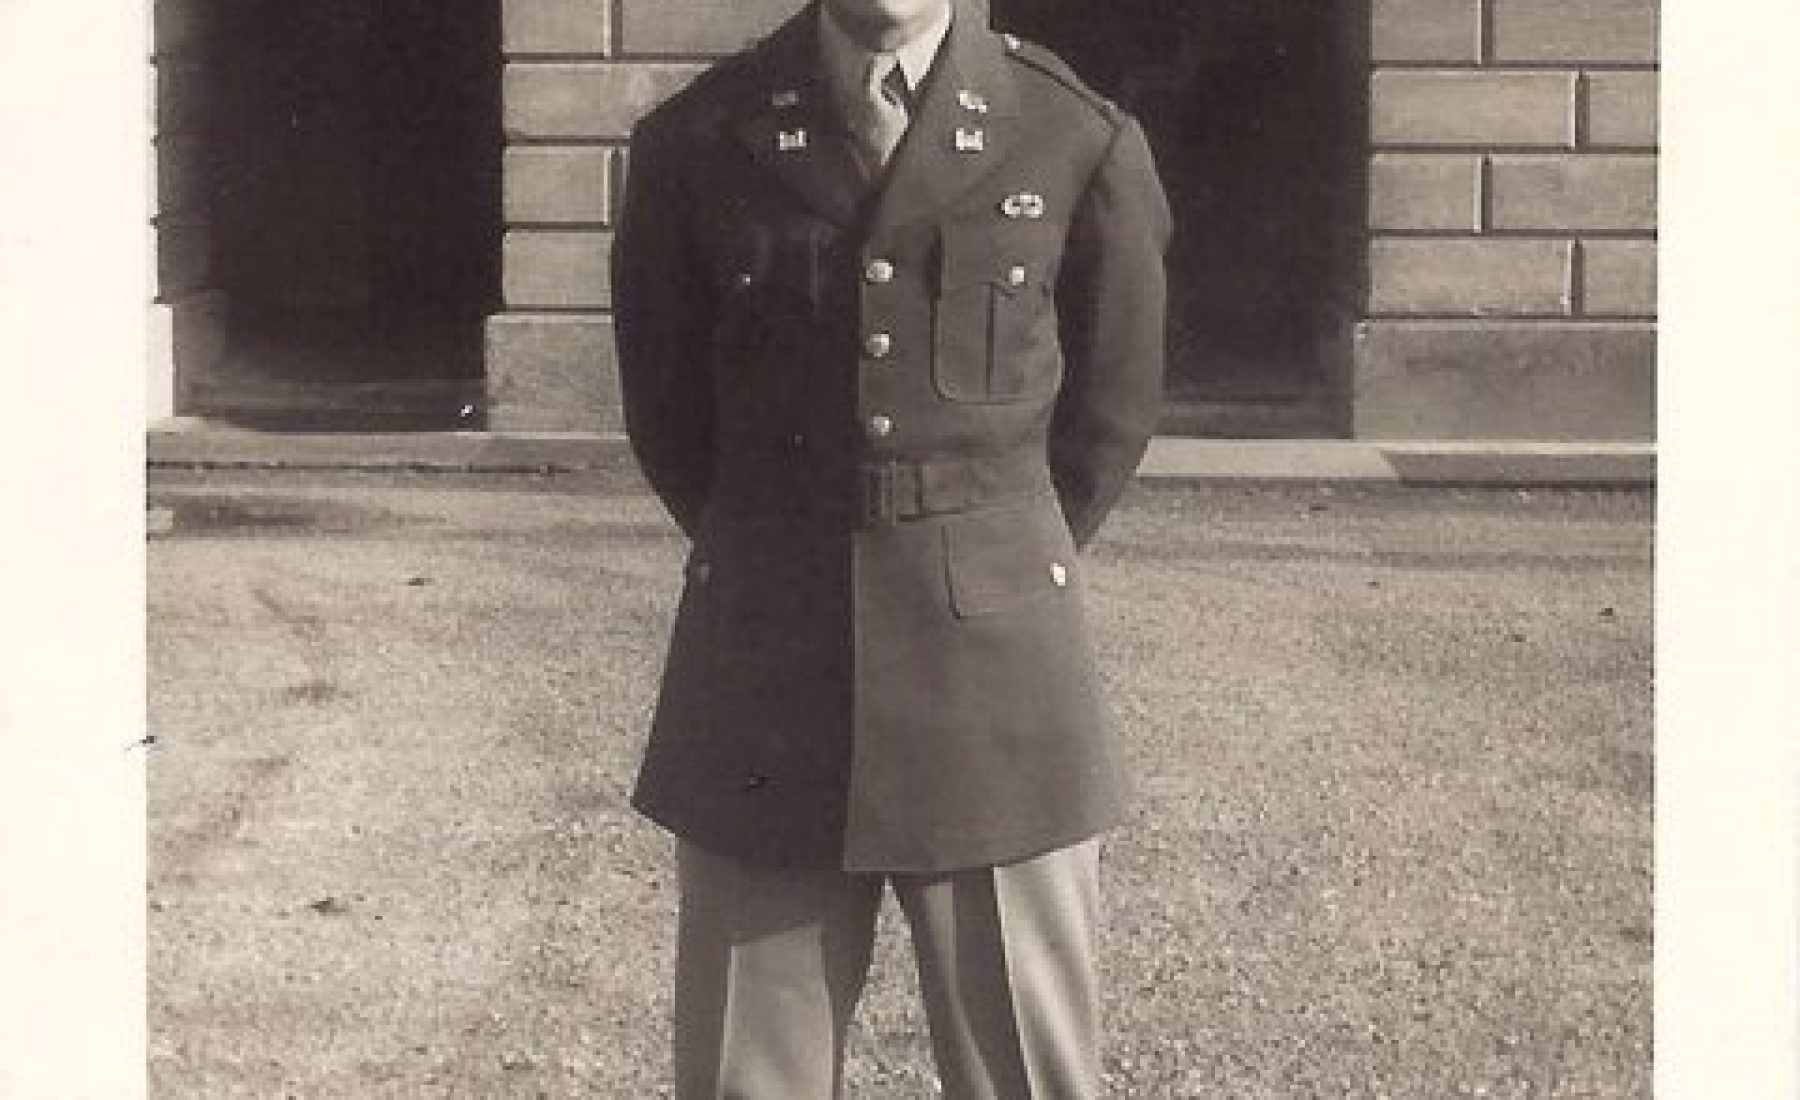 D-Day – June 6, 1944 – A Paratrooper's Story